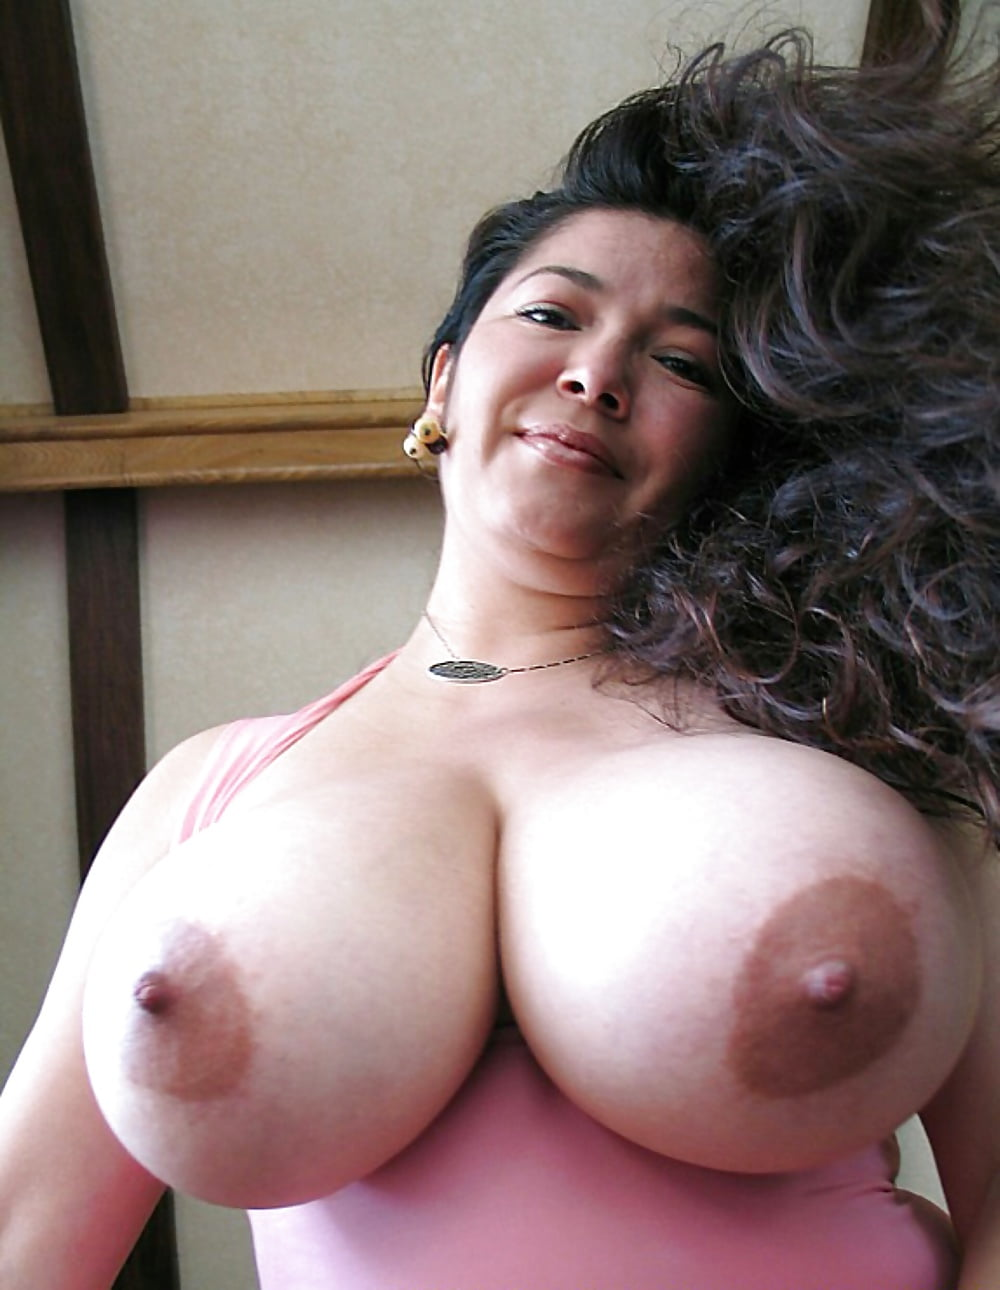 Sorry, West coast latina tits very well